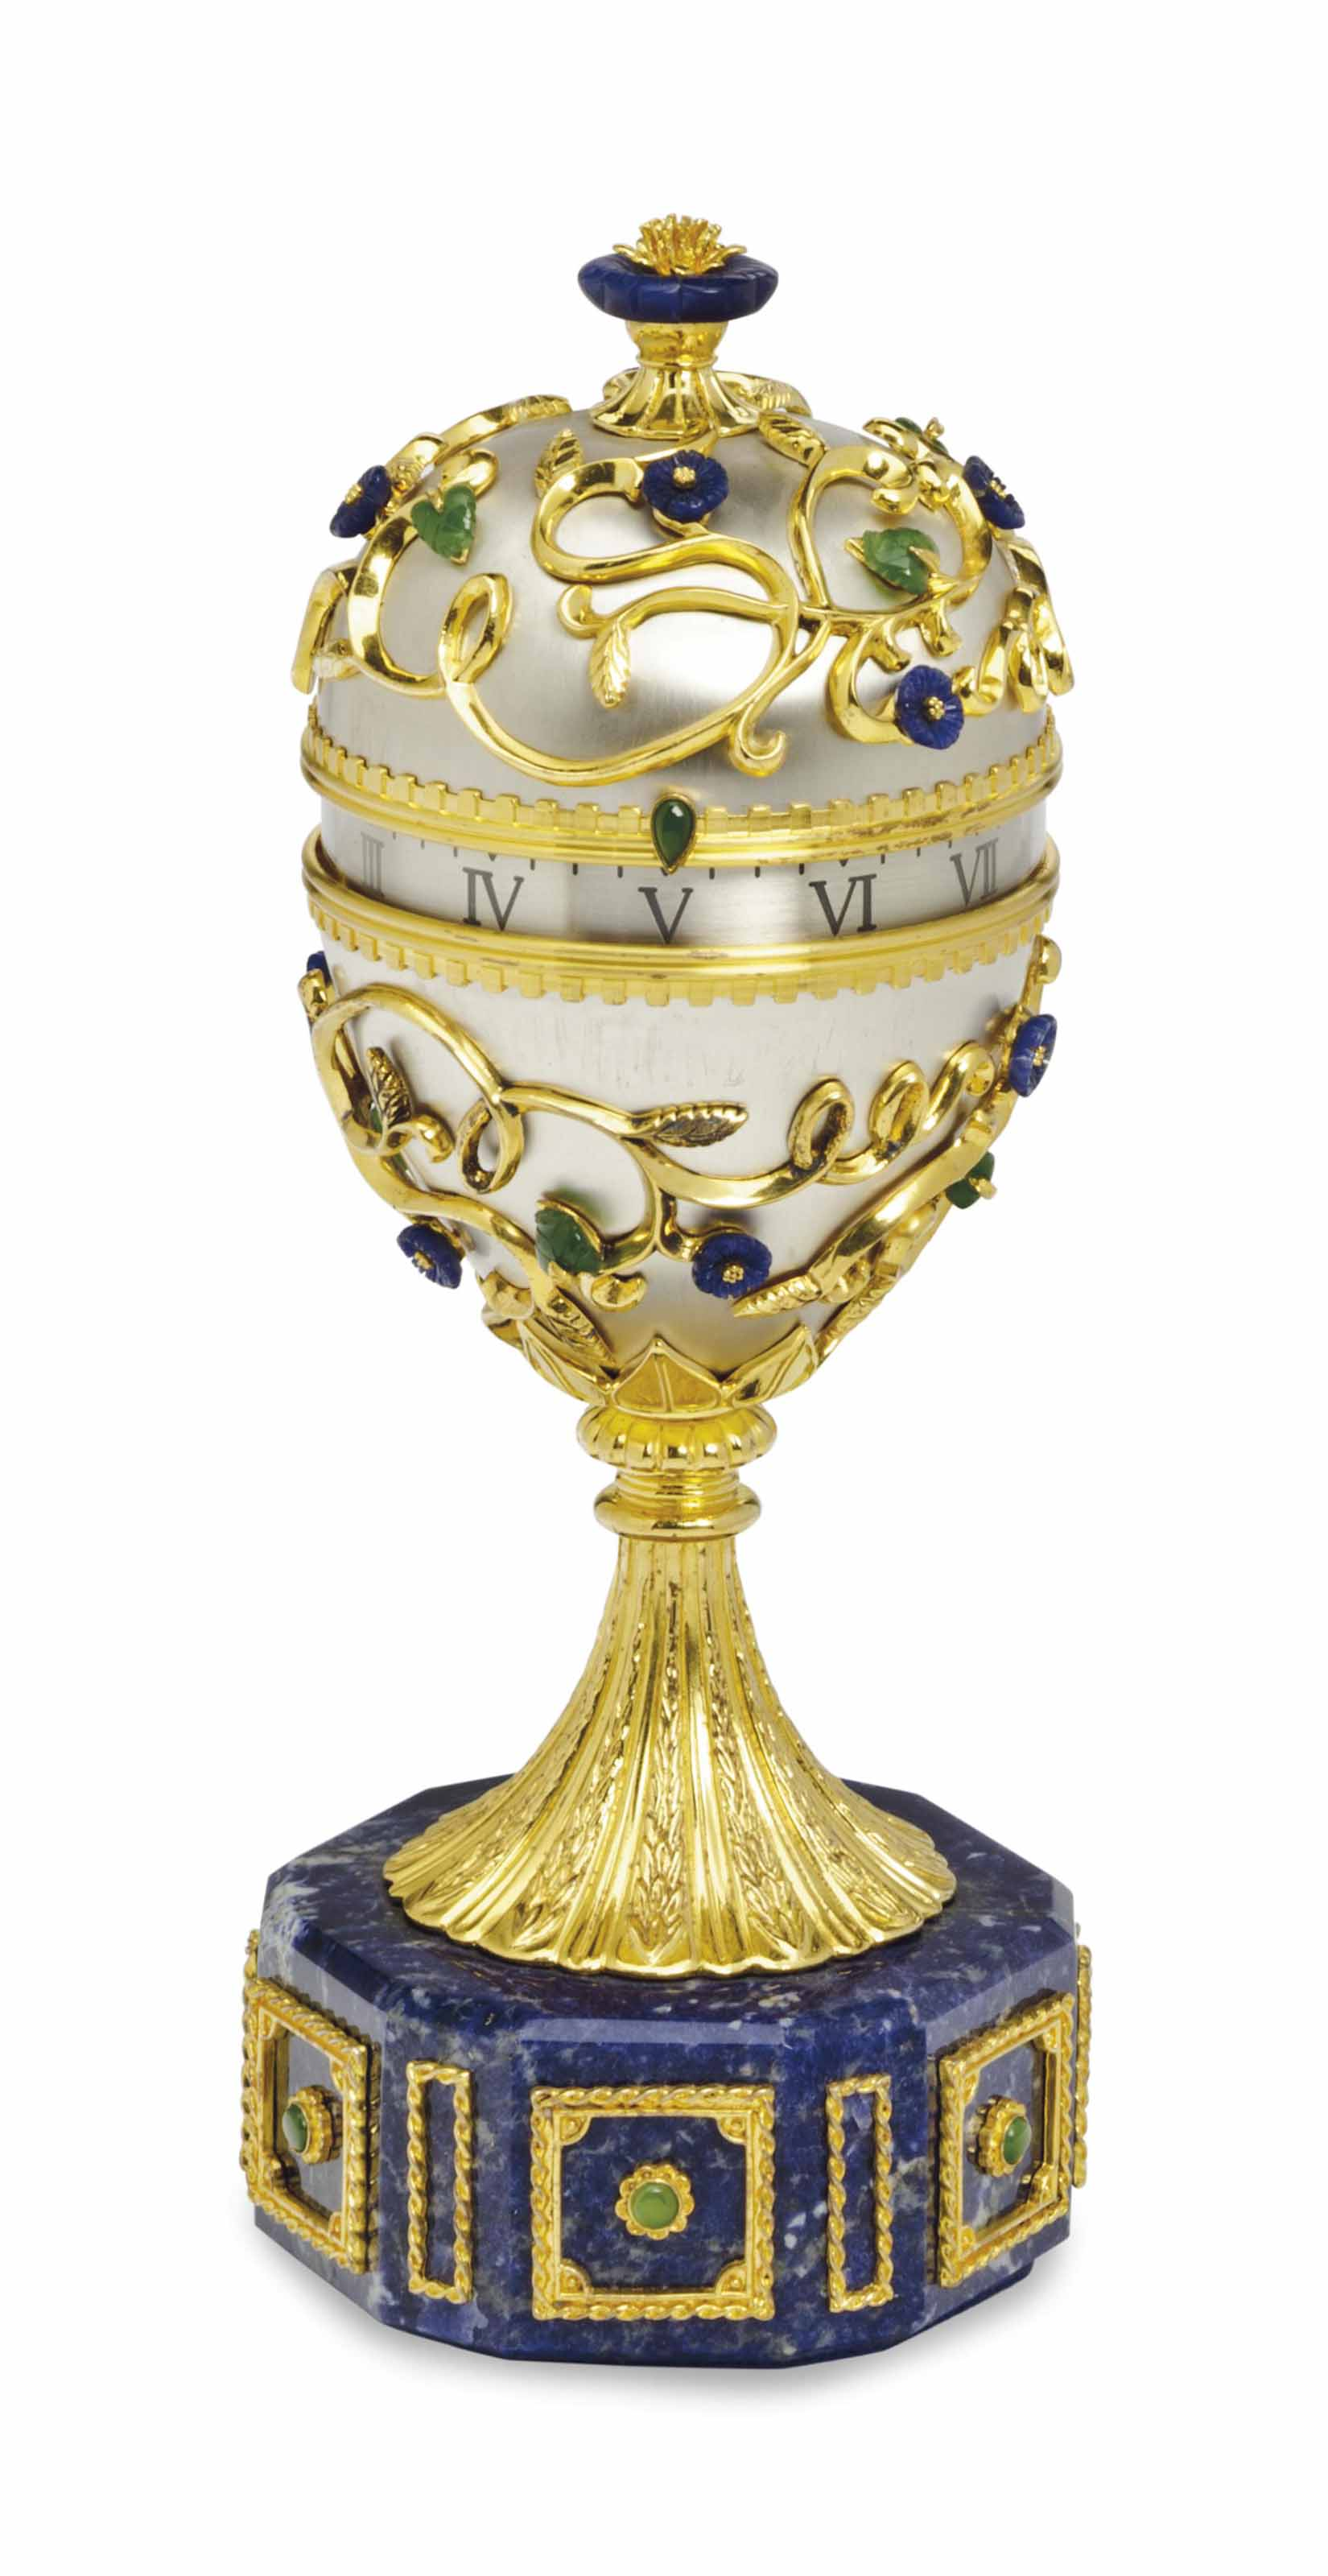 A FABERGE-STYLE HARDSTONE AND